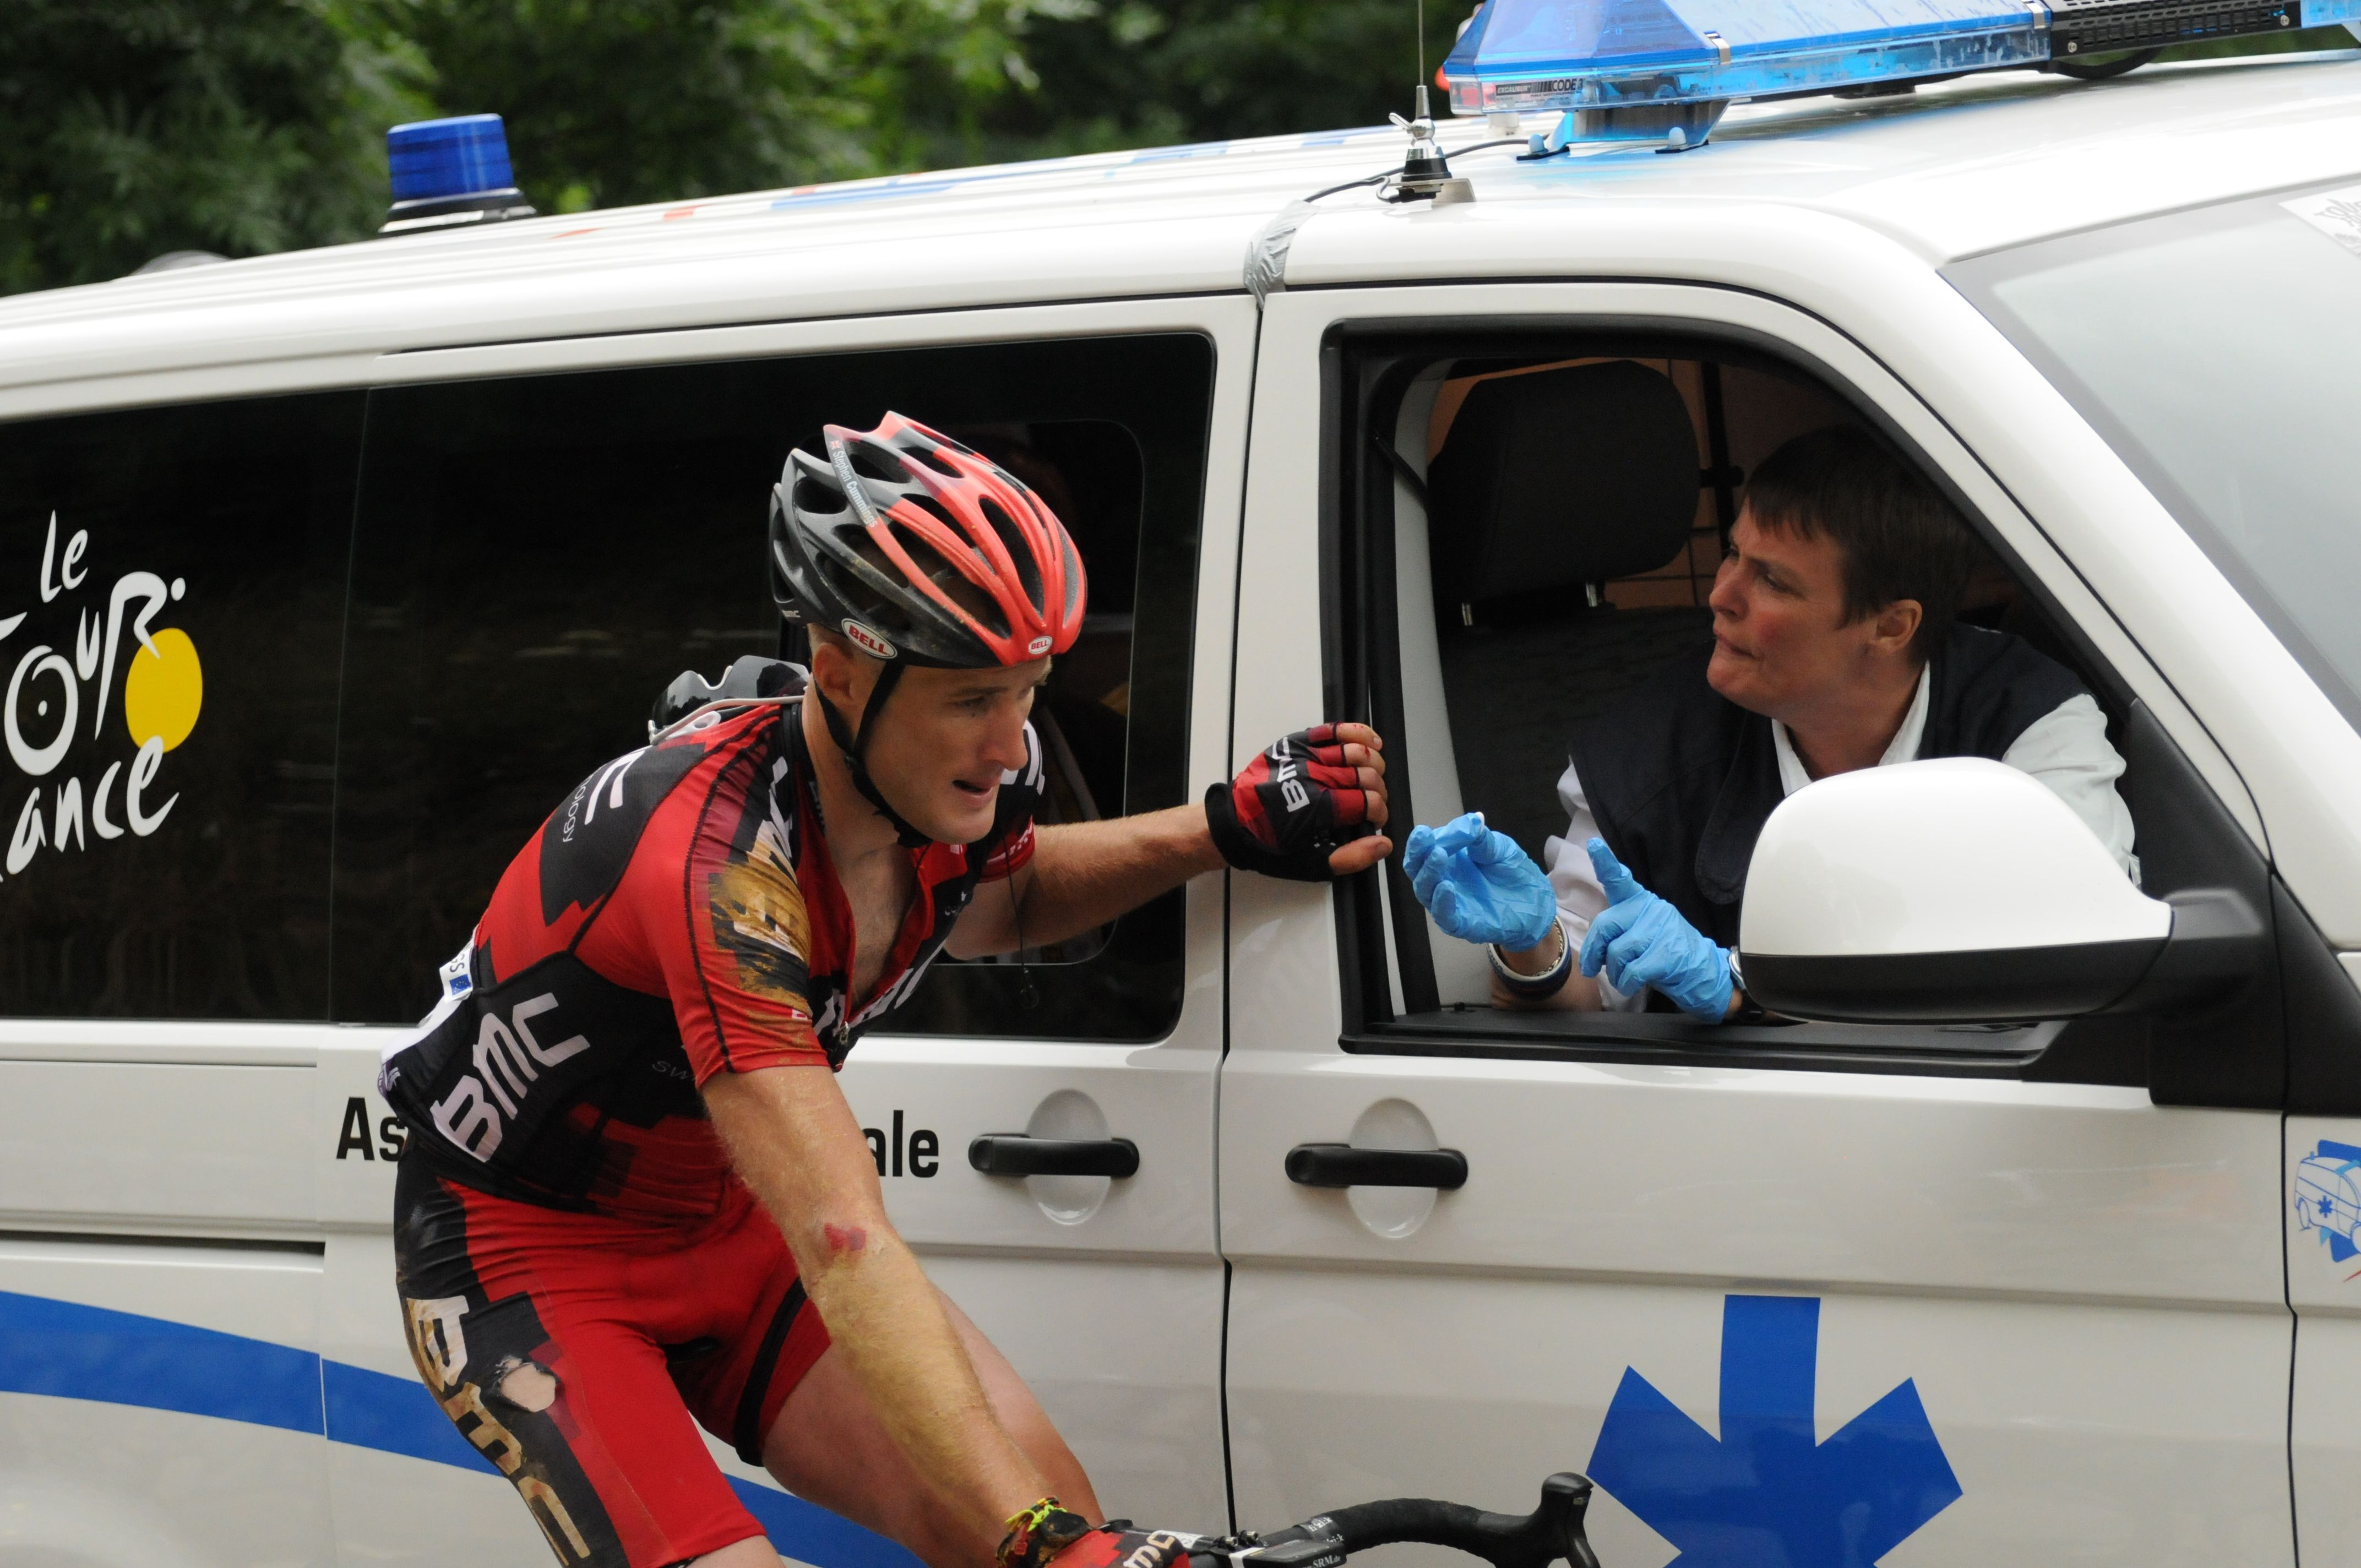 BMC rider Steve Cummings receiving treatment at last year's Tour de France.   Publication - Spincycle magazine June 2013 http://www.spincyclemag.com/